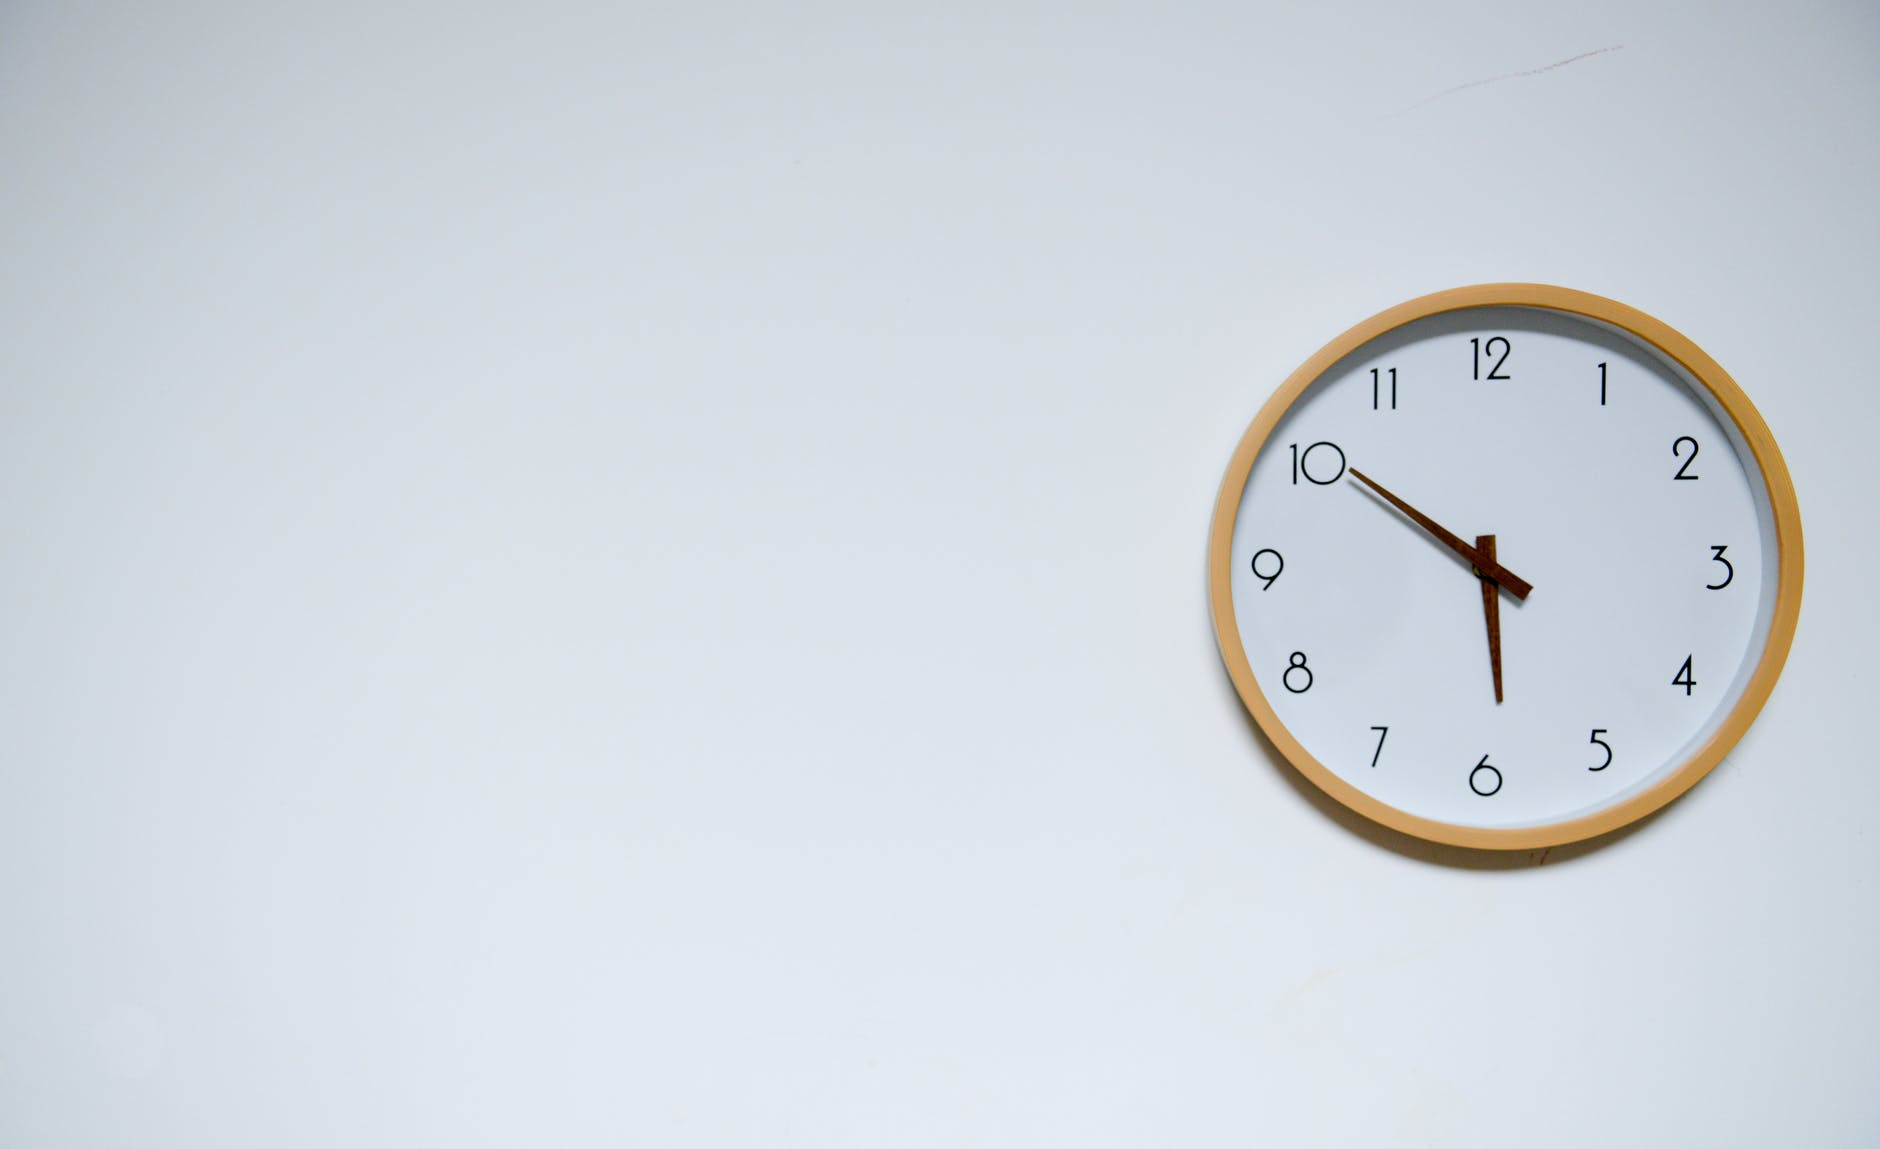 Simple Wall Clock: The Time Tracking Device